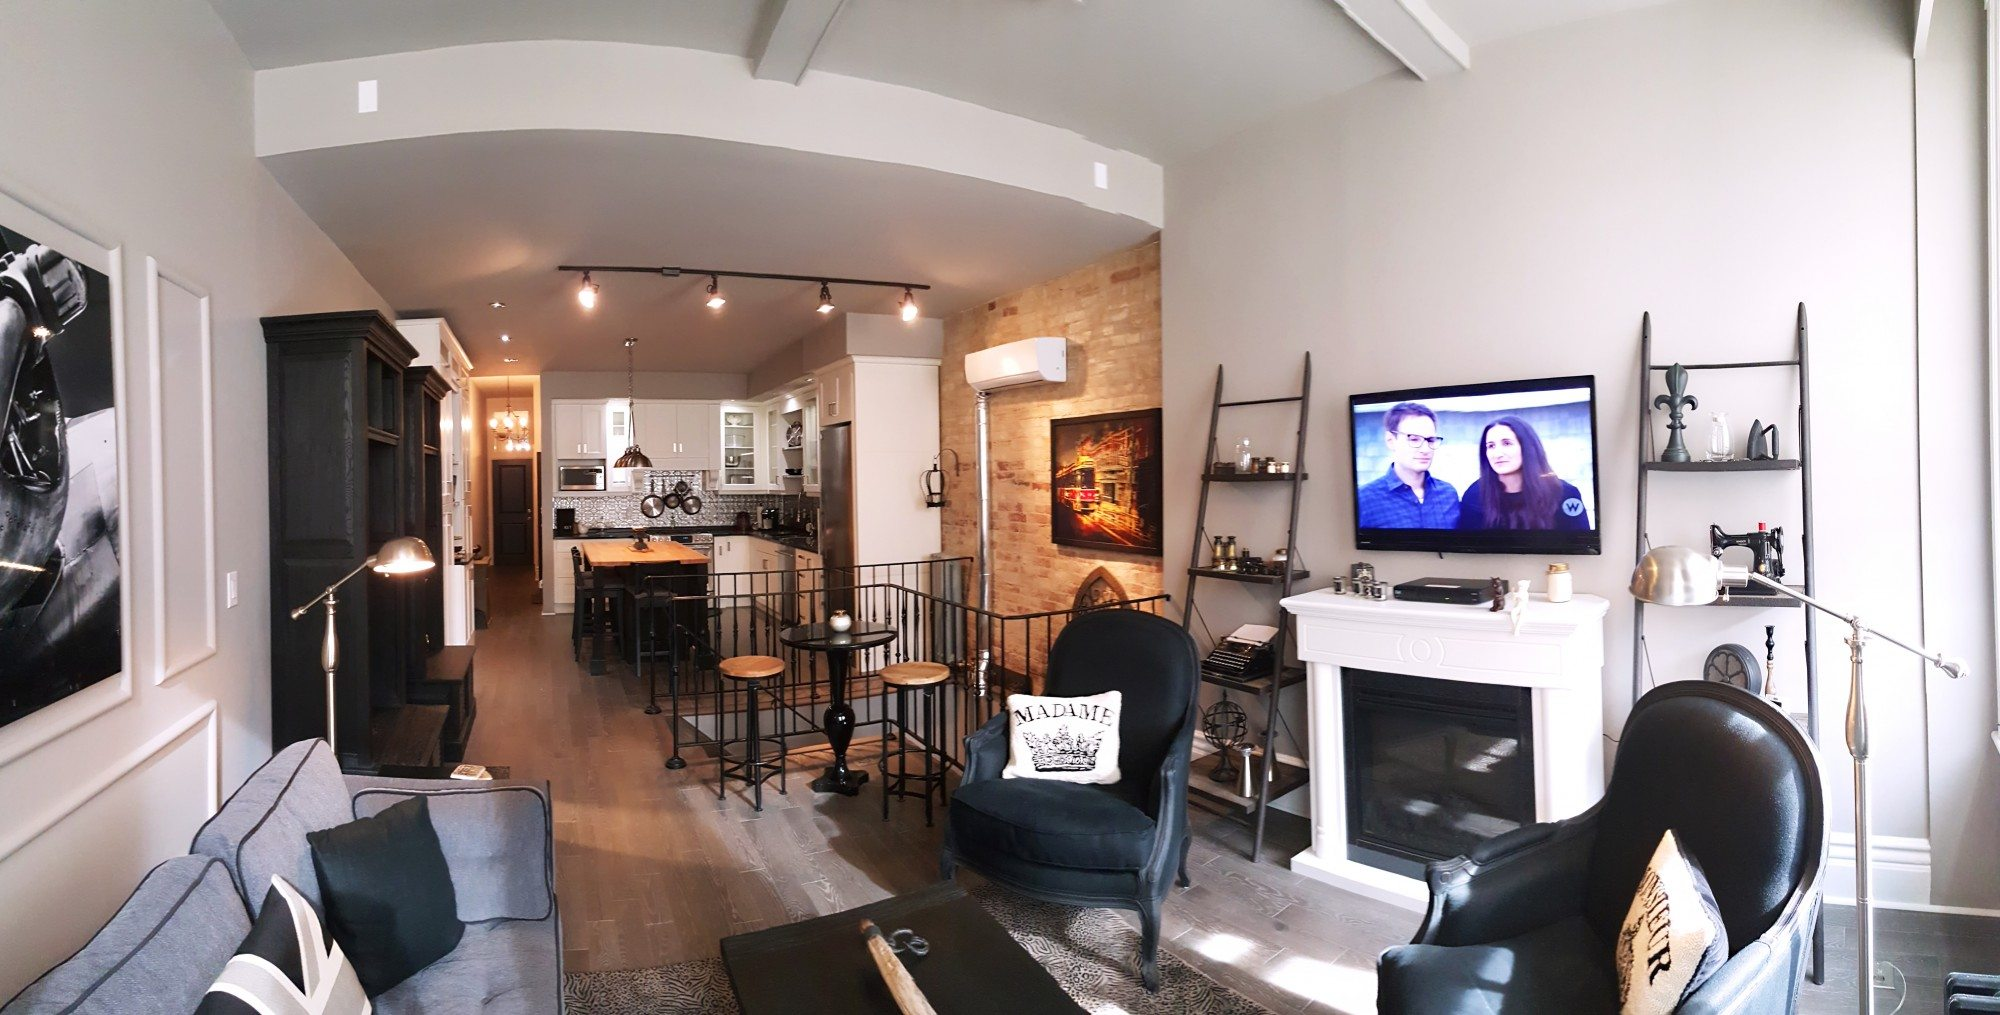 The house for sale at 654 Queen Street West